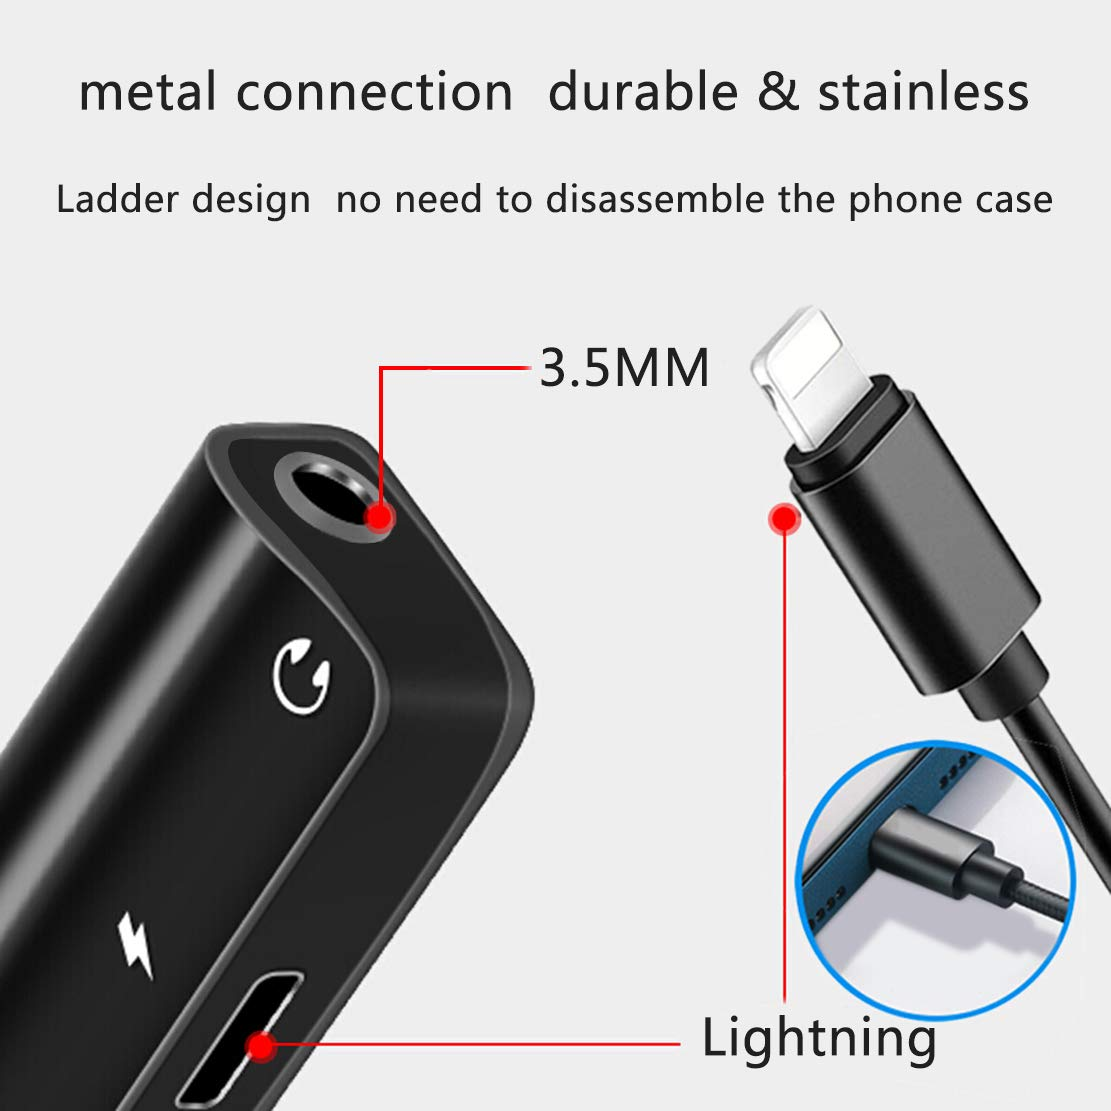 2 in 1 Earphone Audio Jack Splitter Cable Support for iPhone 7//7p//8//8p//X Dongle Accessory Connector Compatible iOS 10.3 or Later Headphone Adapter for iPhone Charger Jack 3.5 mm Jack Adapter